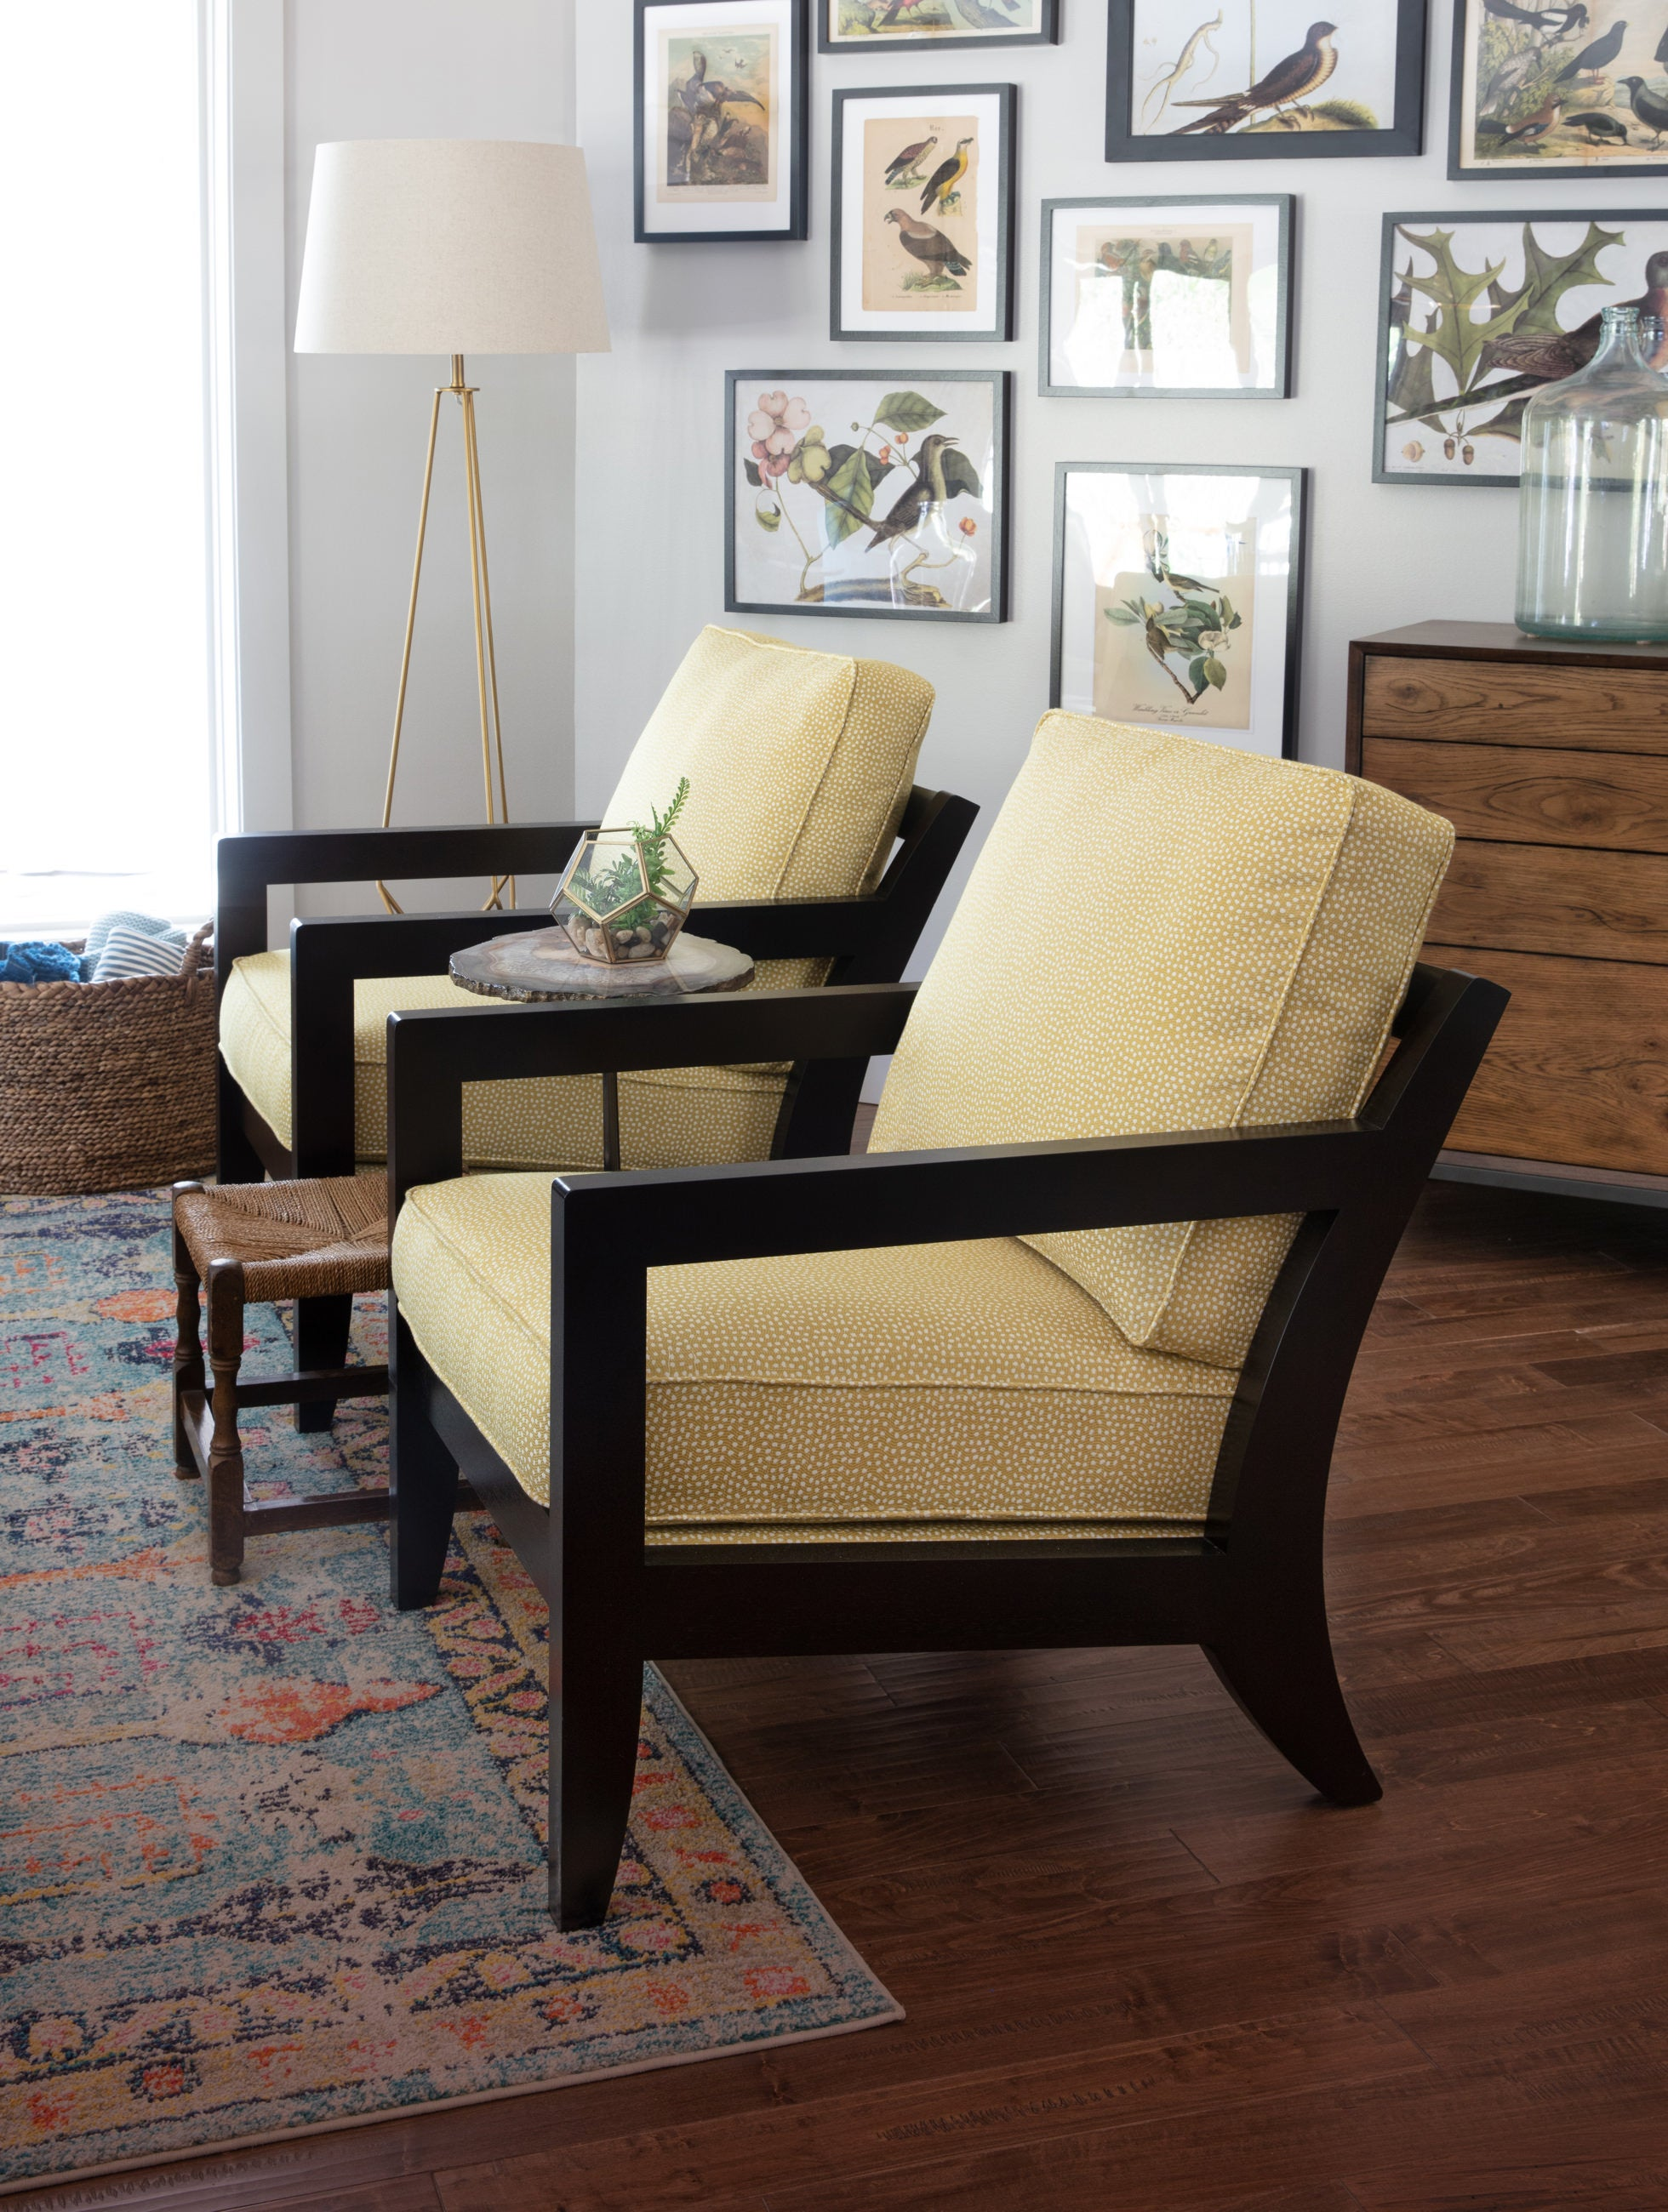 Living room scene with Gridiron Chairs